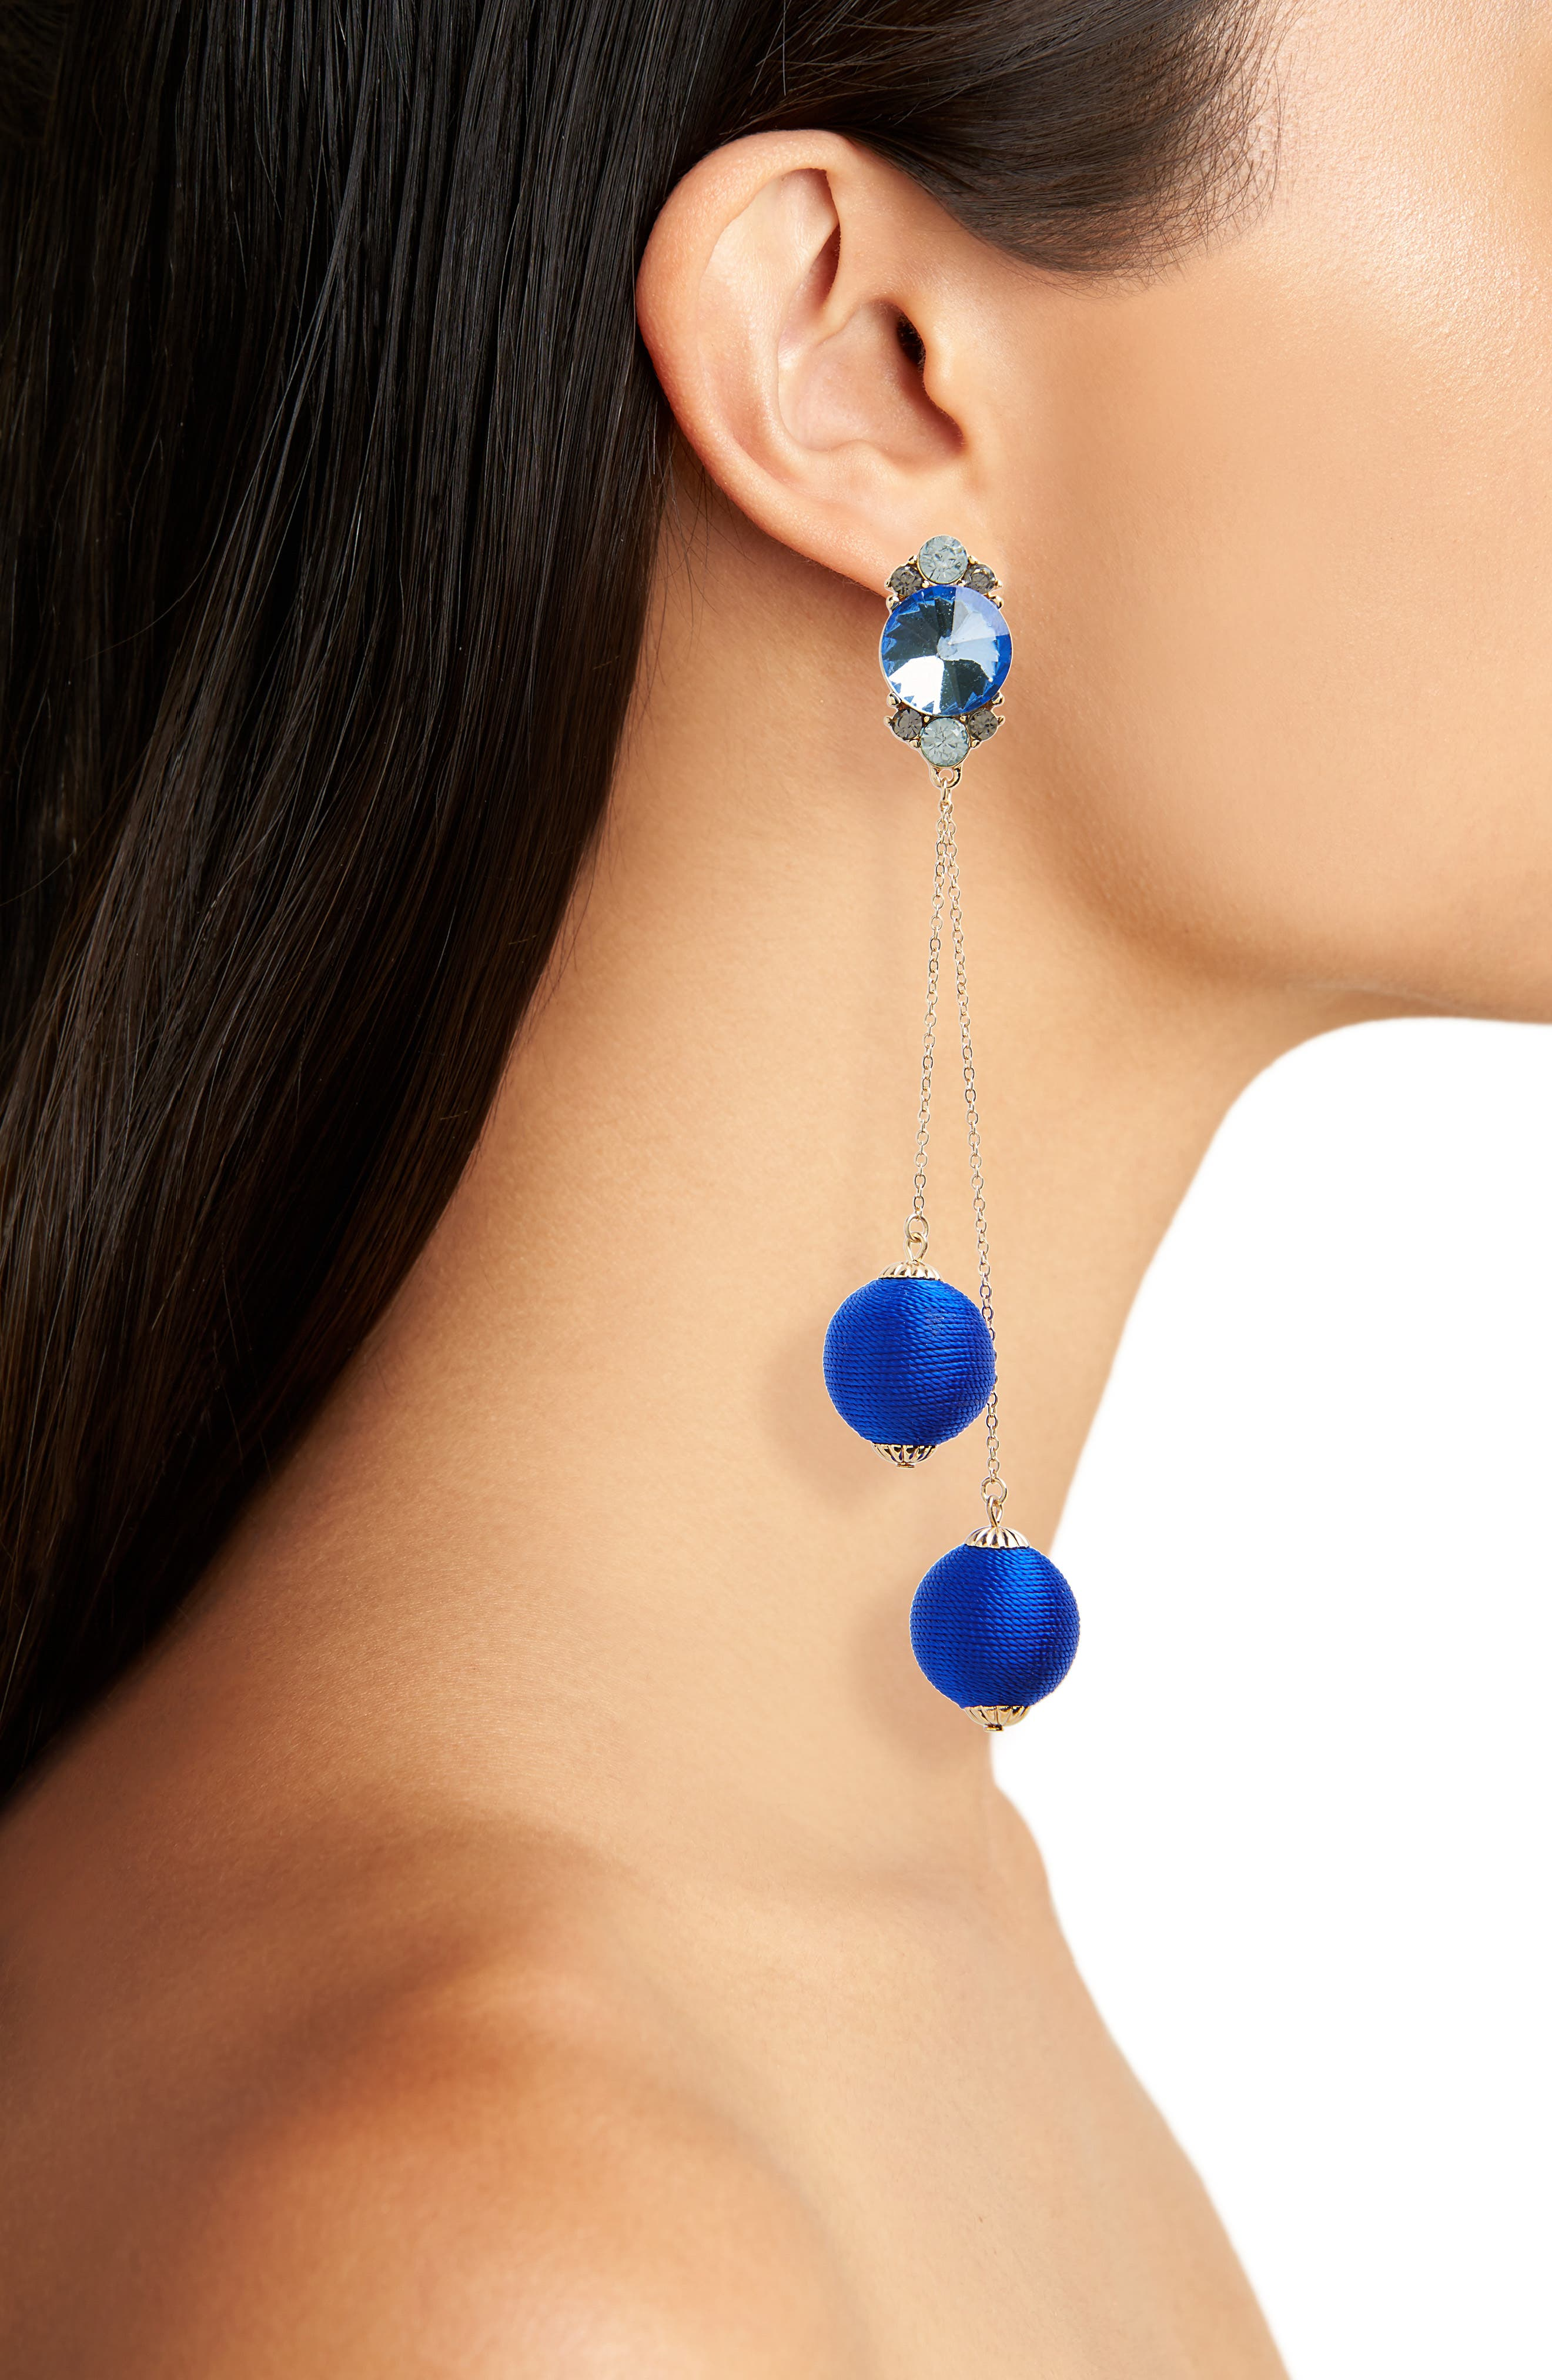 Crystal & Ball Drop Earrings,                             Alternate thumbnail 2, color,                             400